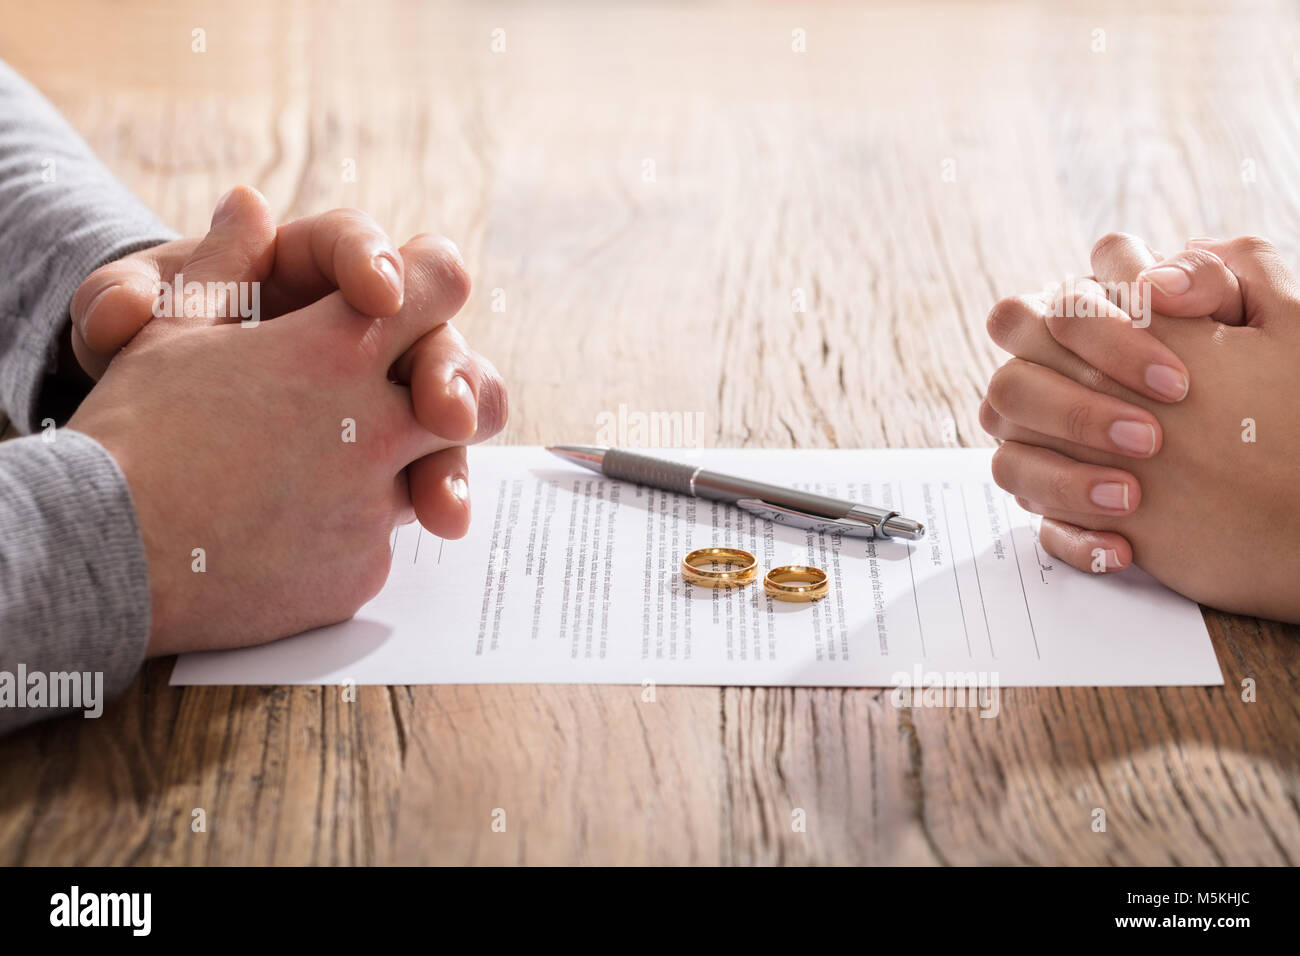 Hands Of Wife And Husband On Divorce Document With Wedding Ring In The Center - Stock Image